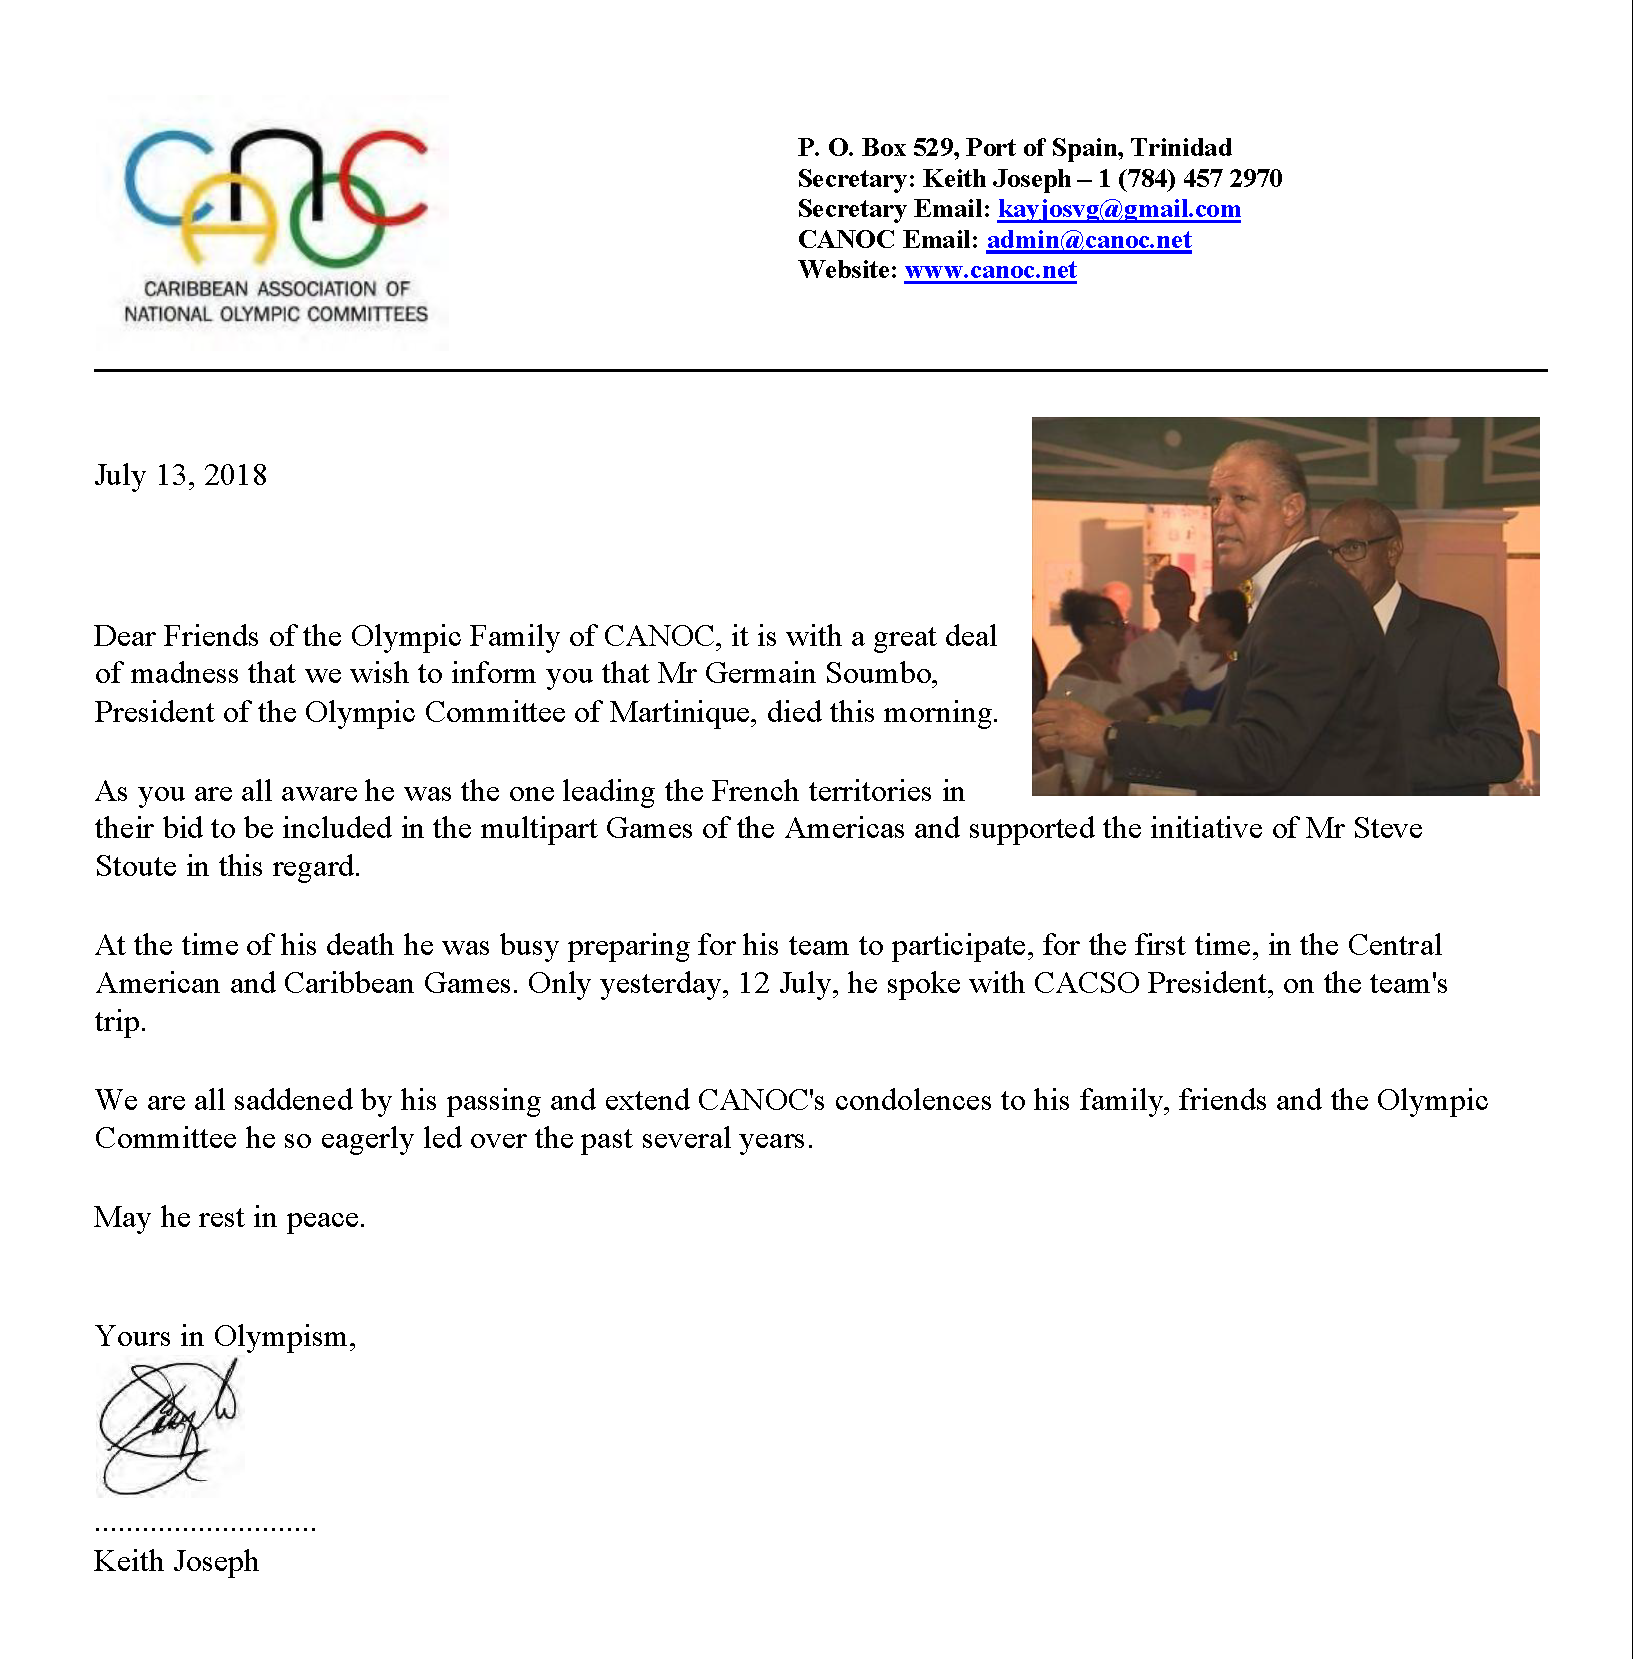 CANOC Re Pres.Soumbo's passing 2018 Jul